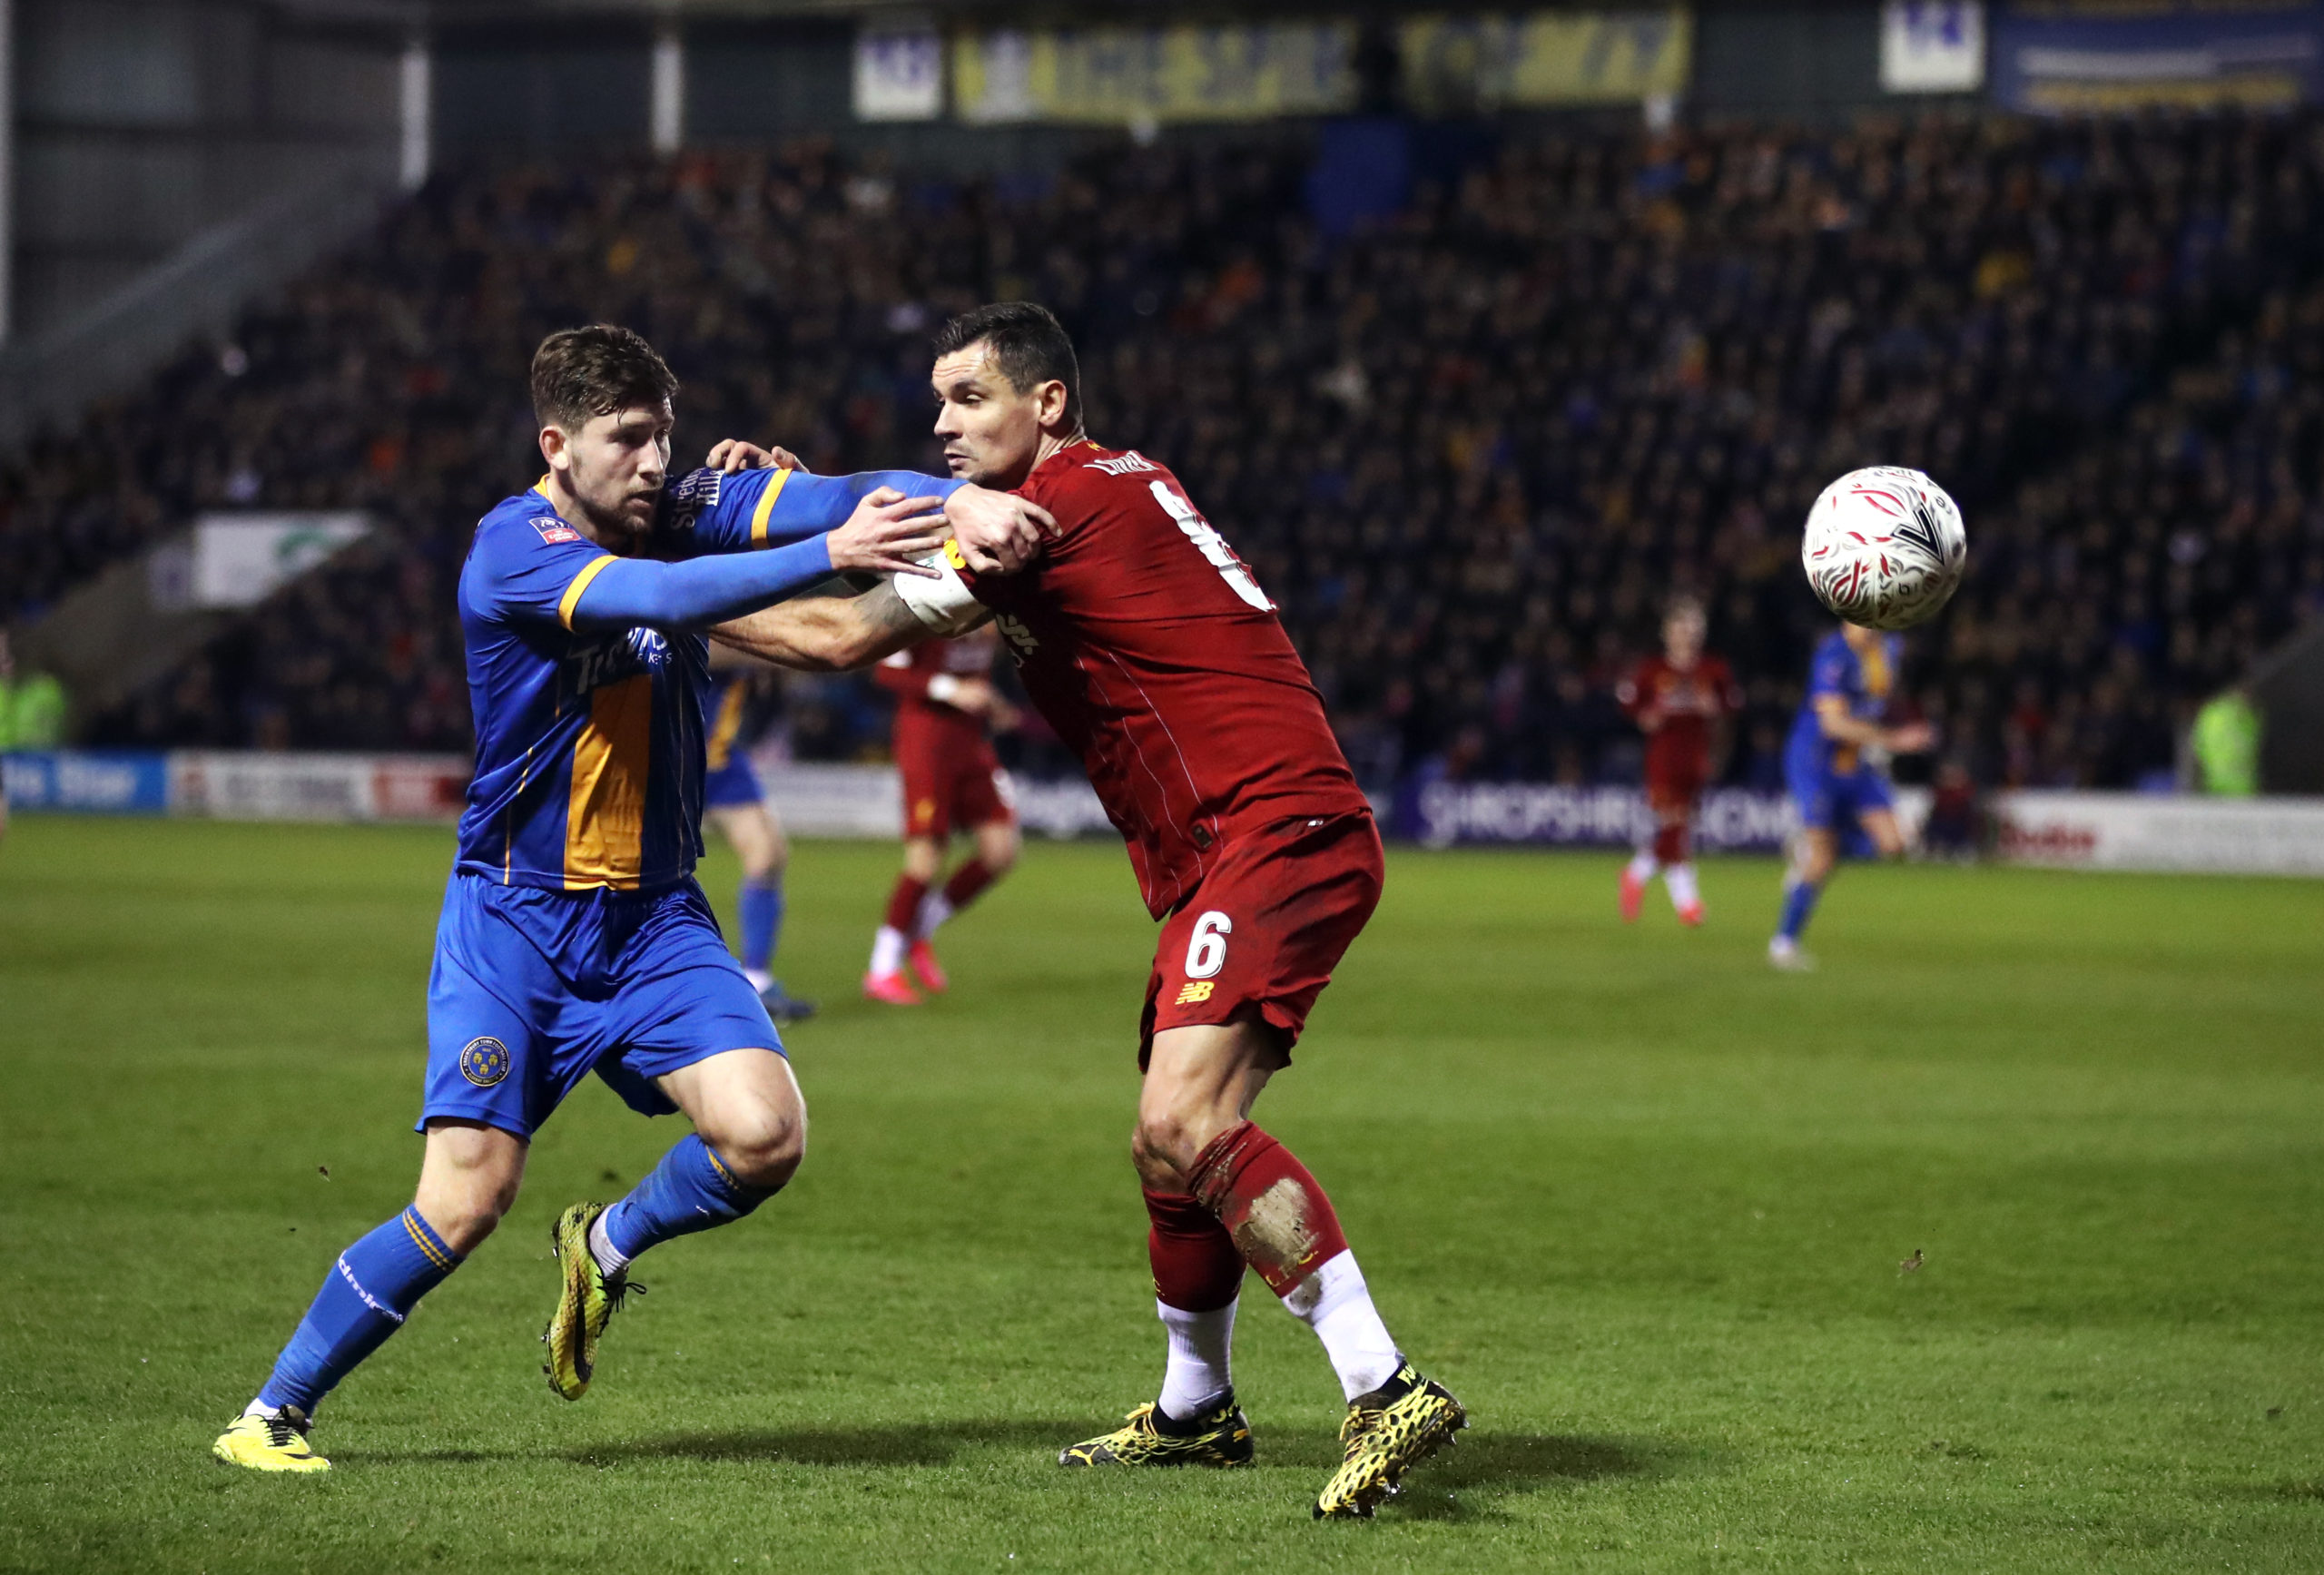 Callum Lang tussles with Dejan Lovren during Shrewsbury Town's FA Cup fourth-round tie with Liverpool in January